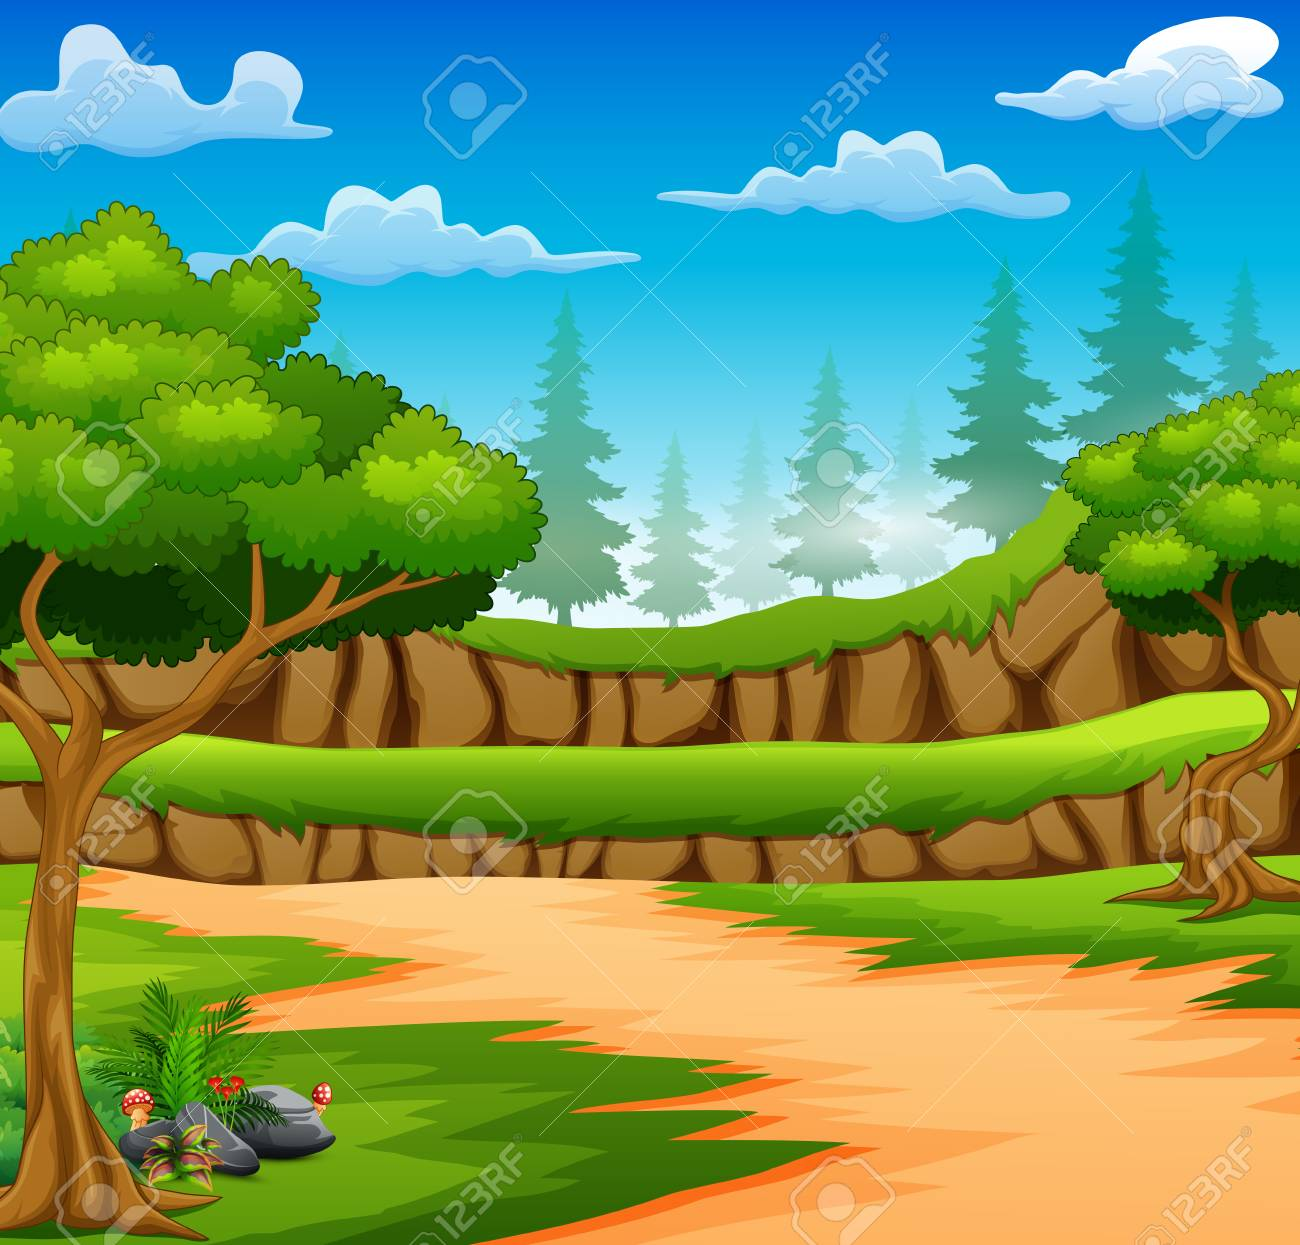 Cartoon of forest background with dirt road.